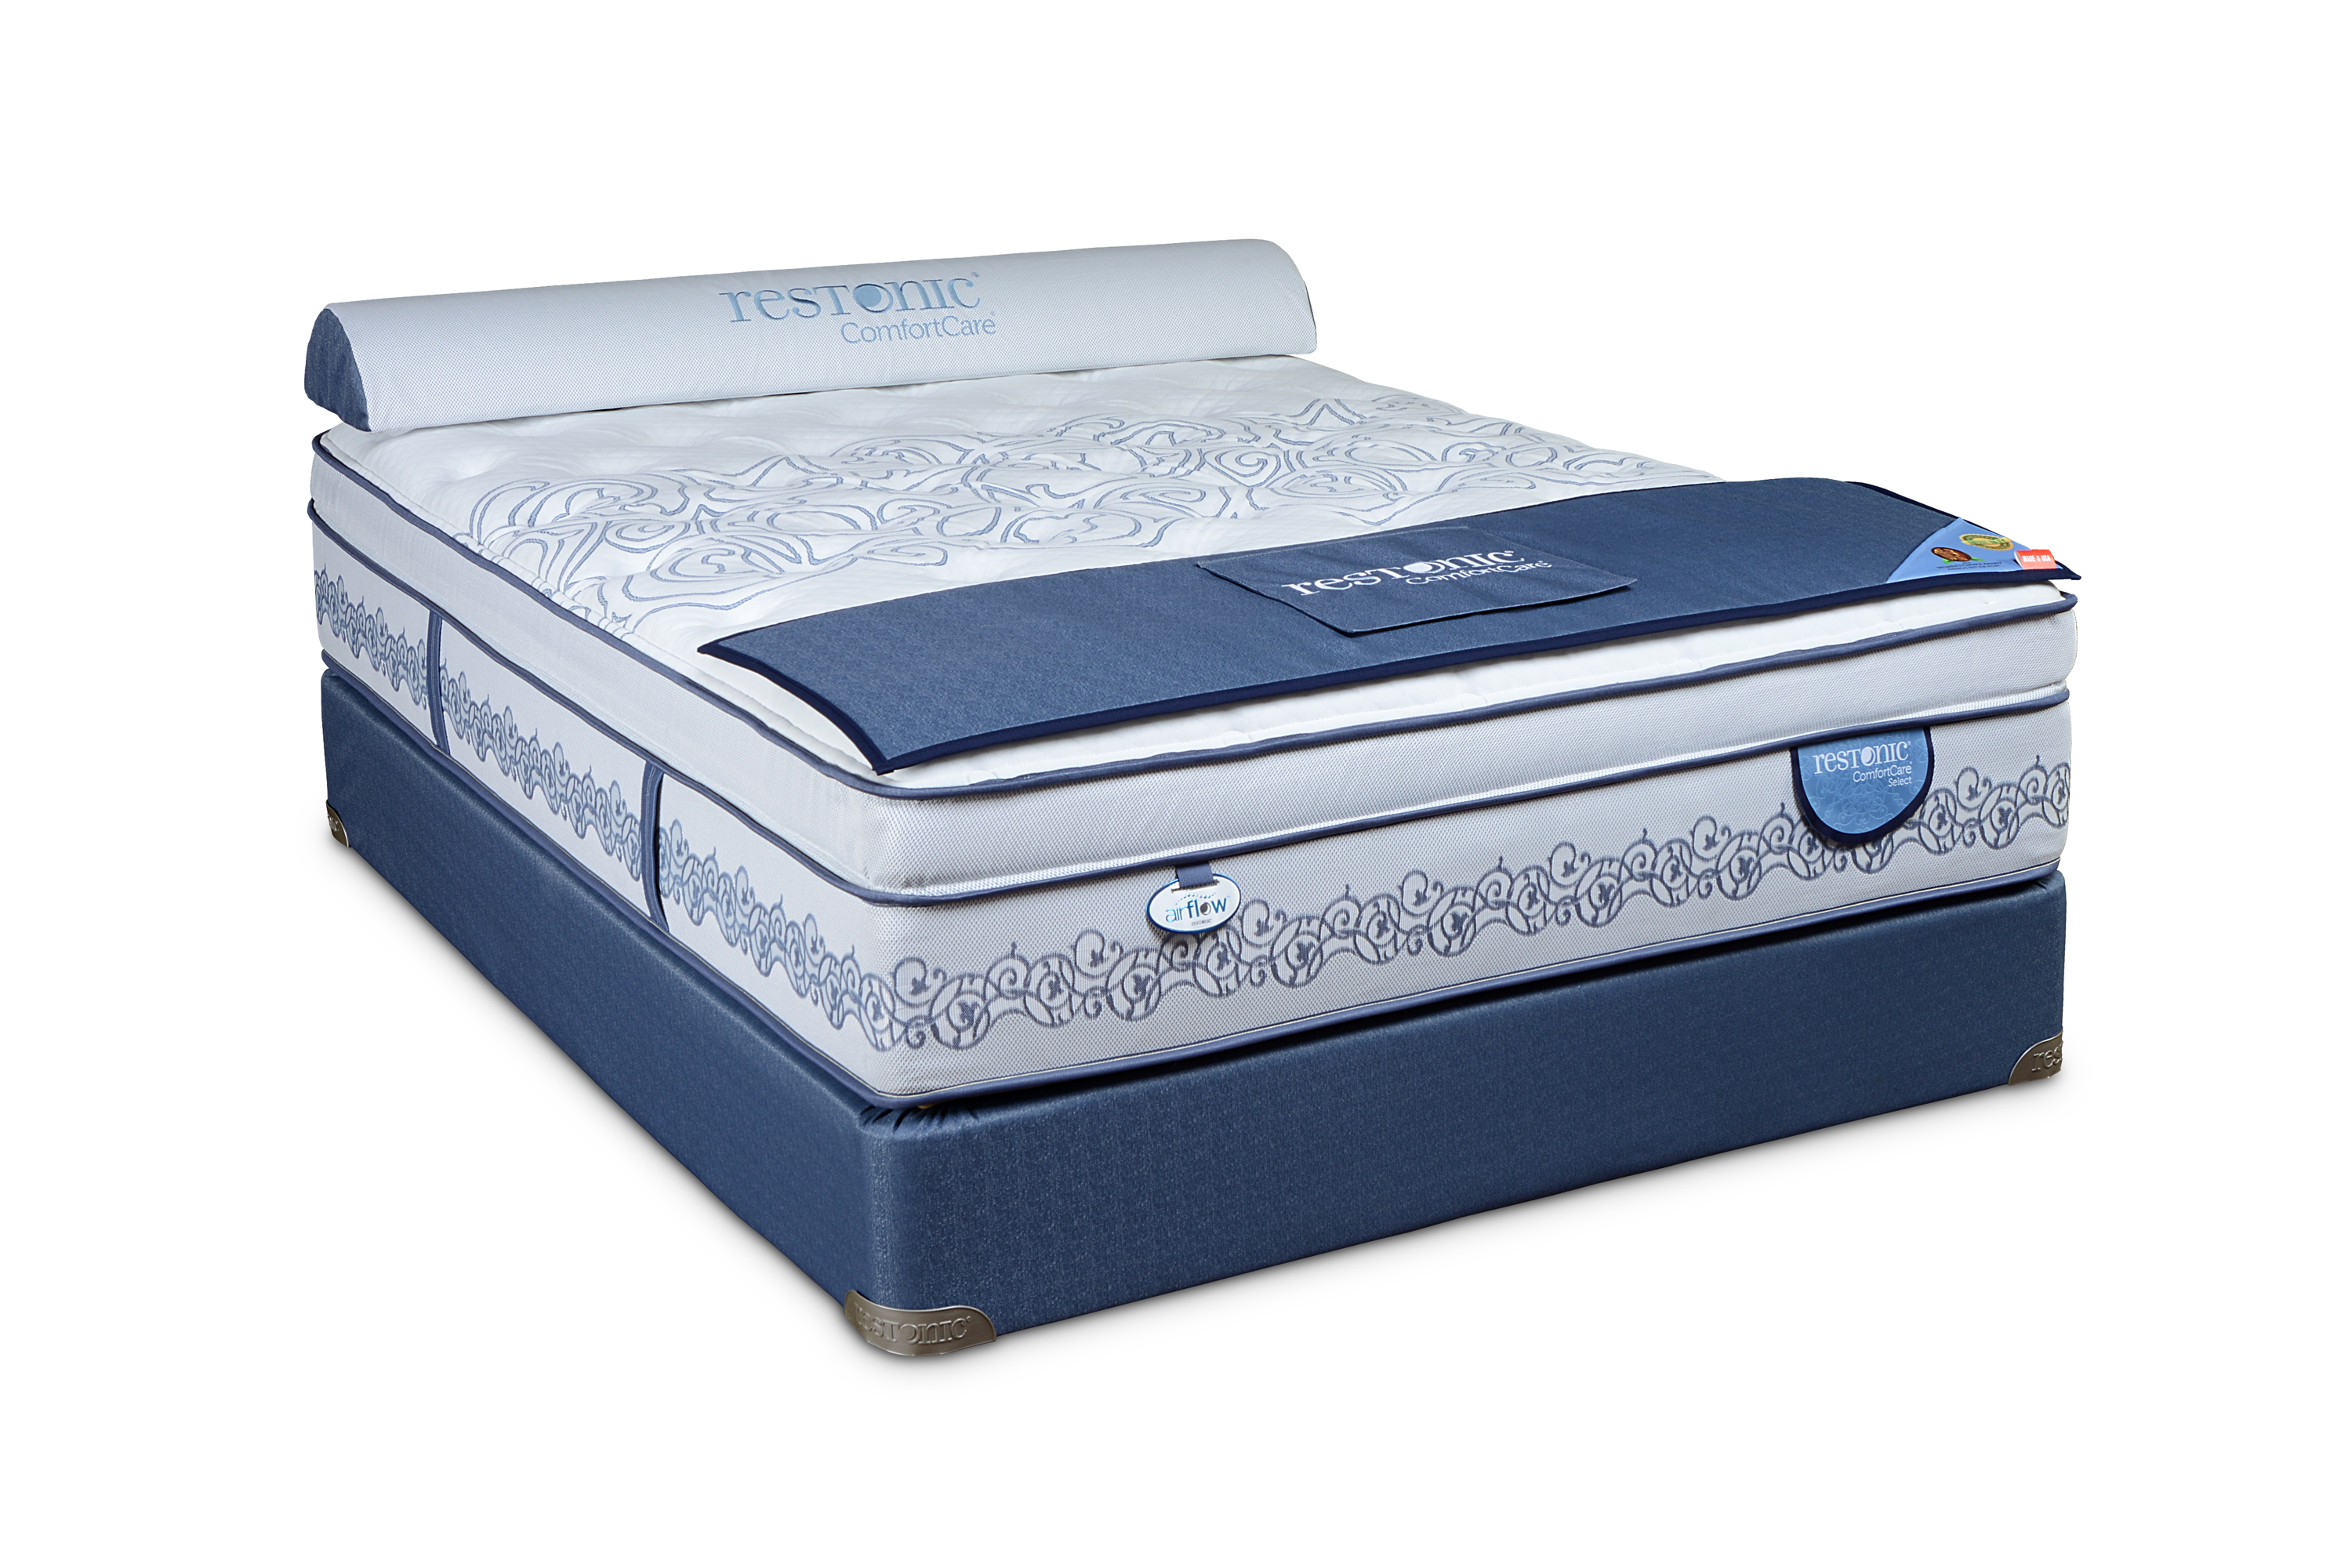 Restonic Mattress Reviews